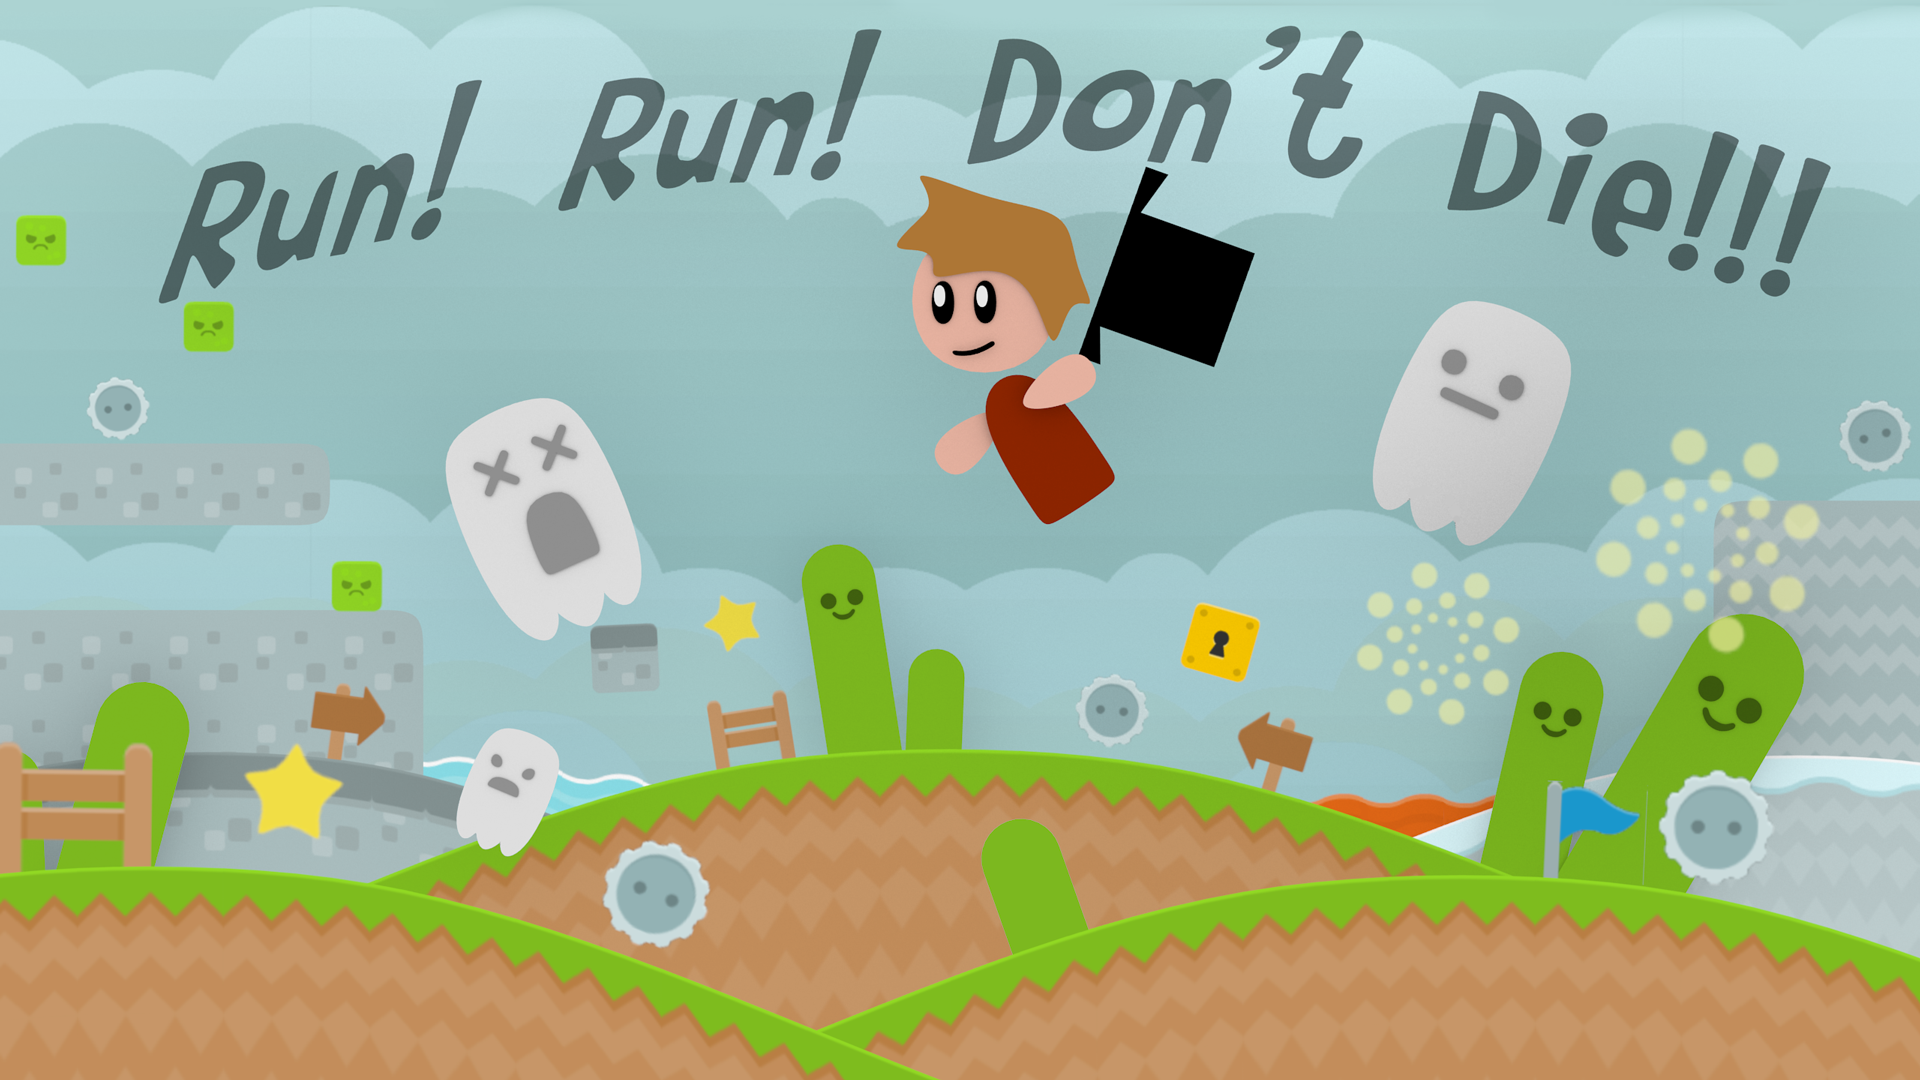 Run Run Don't Die